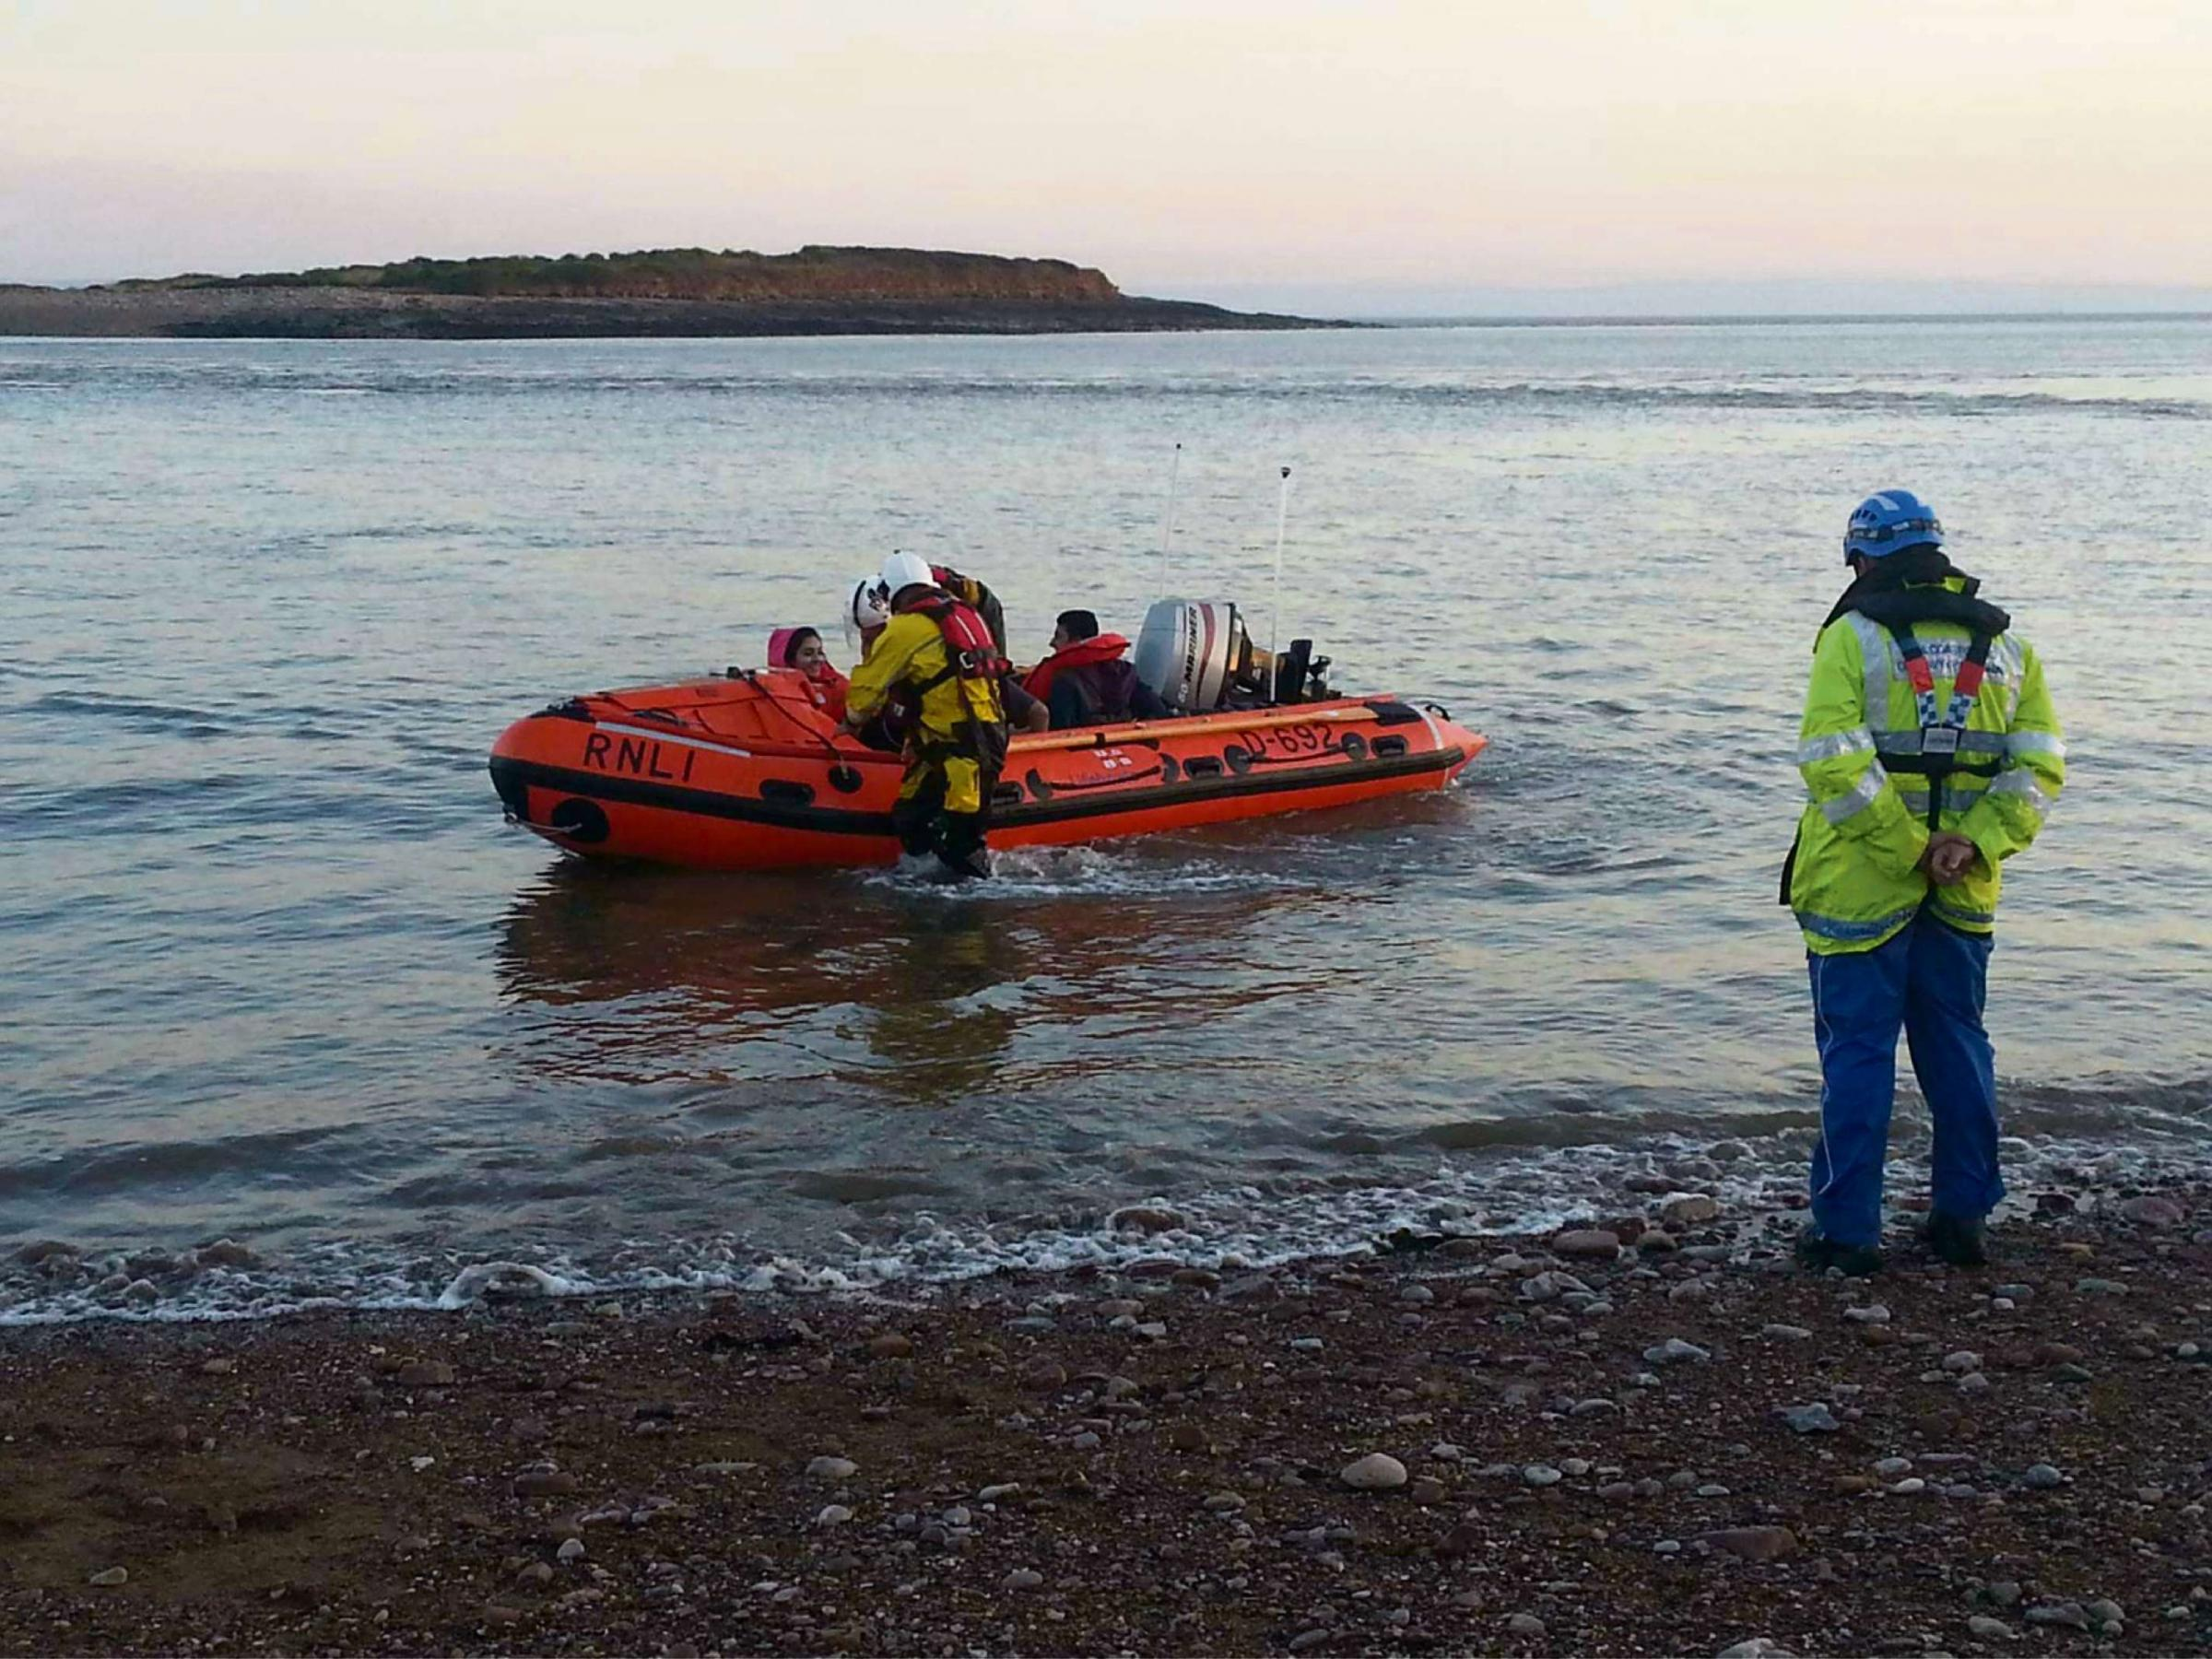 Lifeboat and coastguards rescue stranded Sully Island family